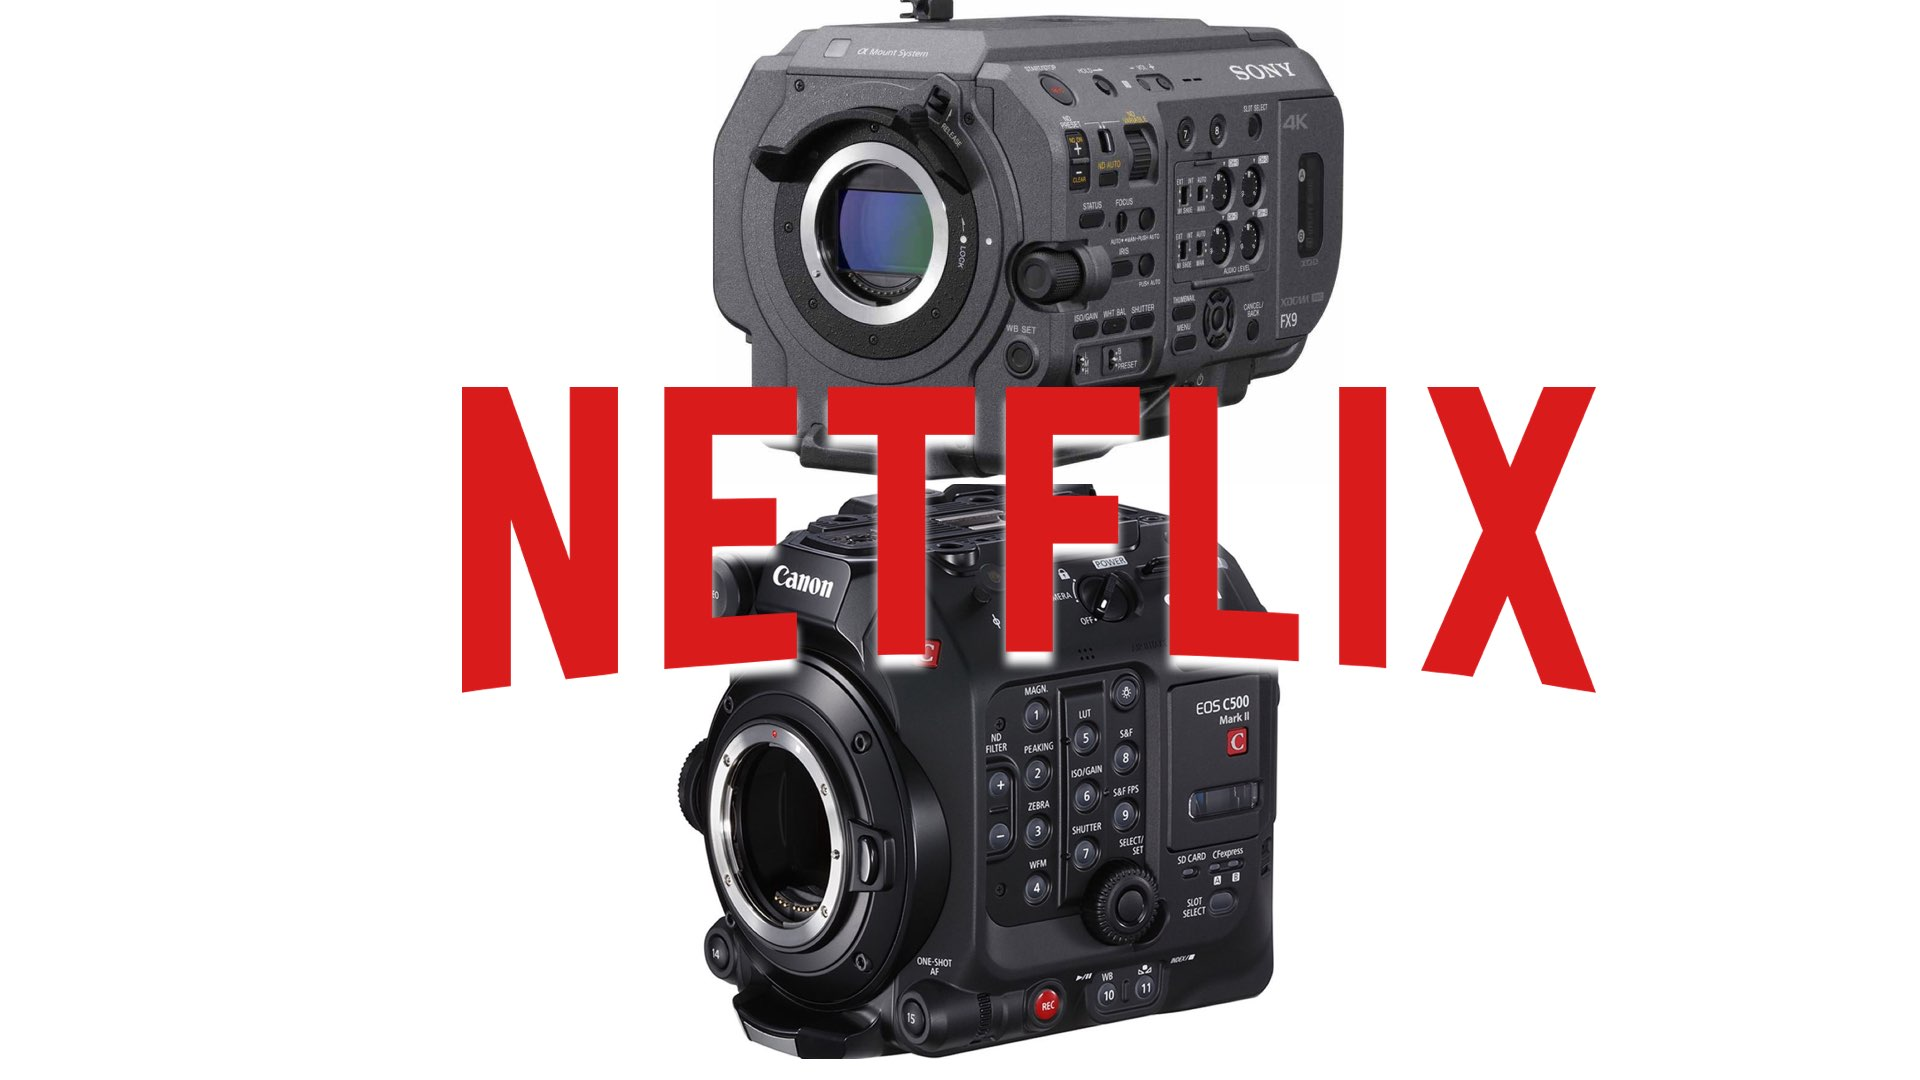 Netflix approves C500 Mark II and Sony FX9